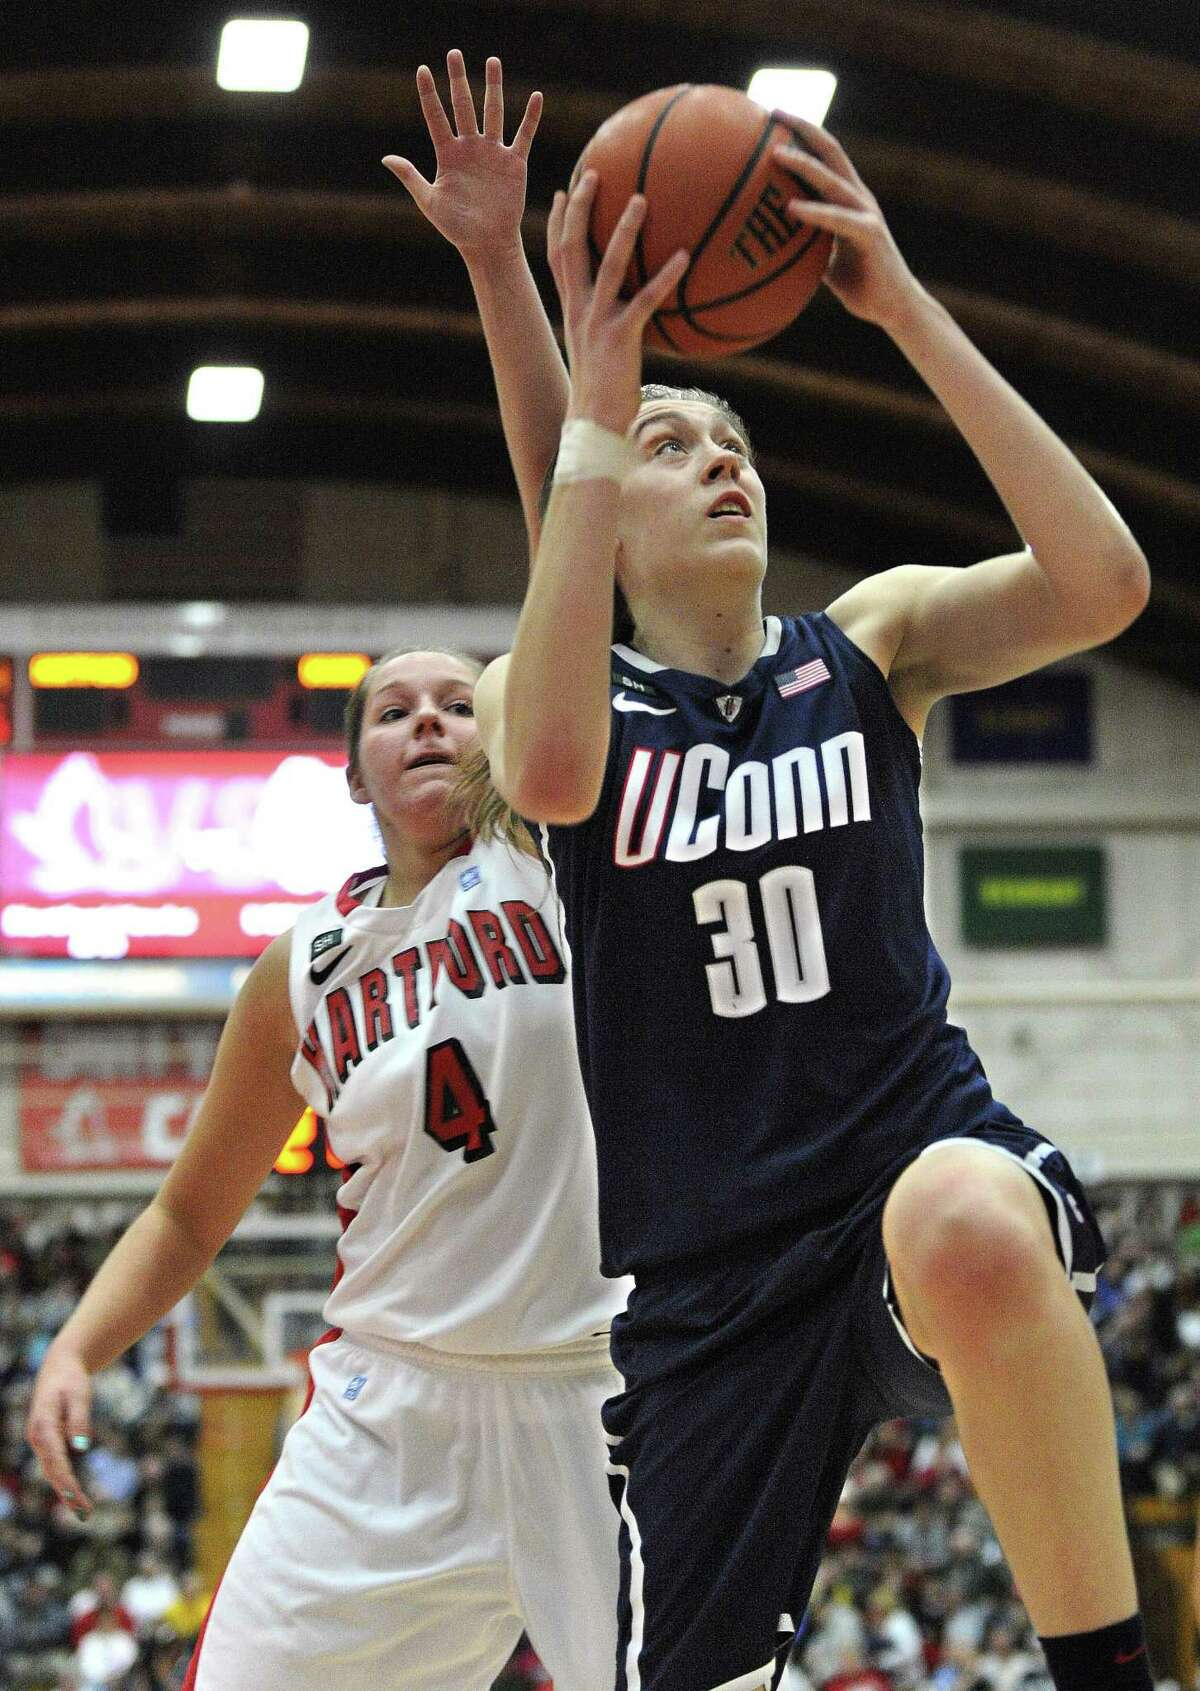 Connecticut's Breanna Stewart (30) goes up for a basket while guarded by Hartford's Christie Michals (4) during the second half of an NCAA women's college basketball game in West Hartford, Conn., Saturday, Dec. 22, 2012. Stewart was top scorer for Connecticut with 27 points in their 102-45 win over Hartford. (AP Photo/Jessica Hill)